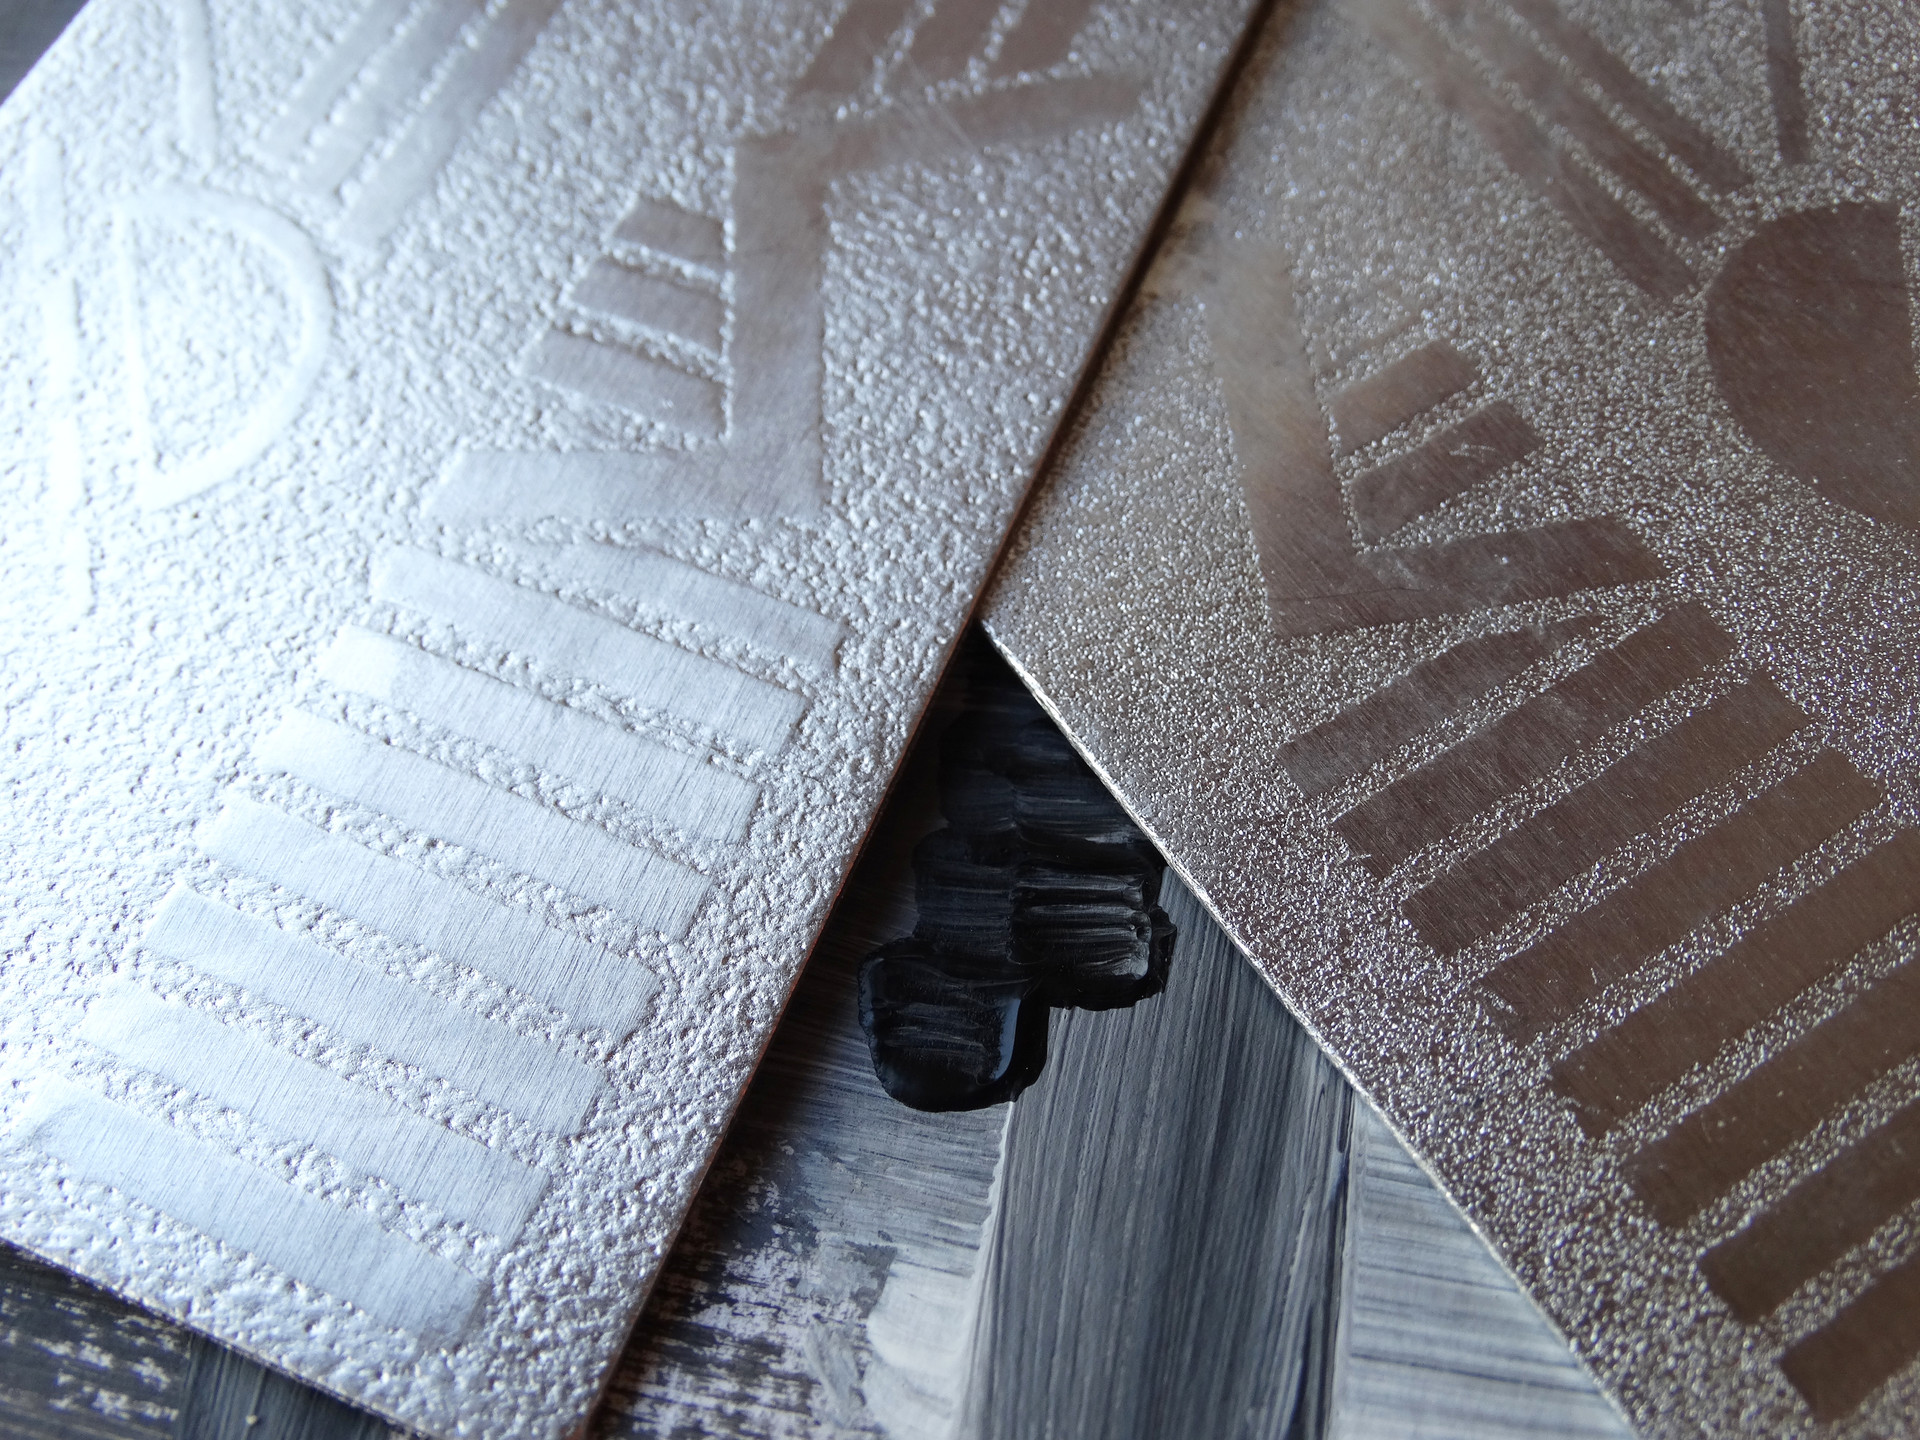 textured-effect metal surface with geometric pattern